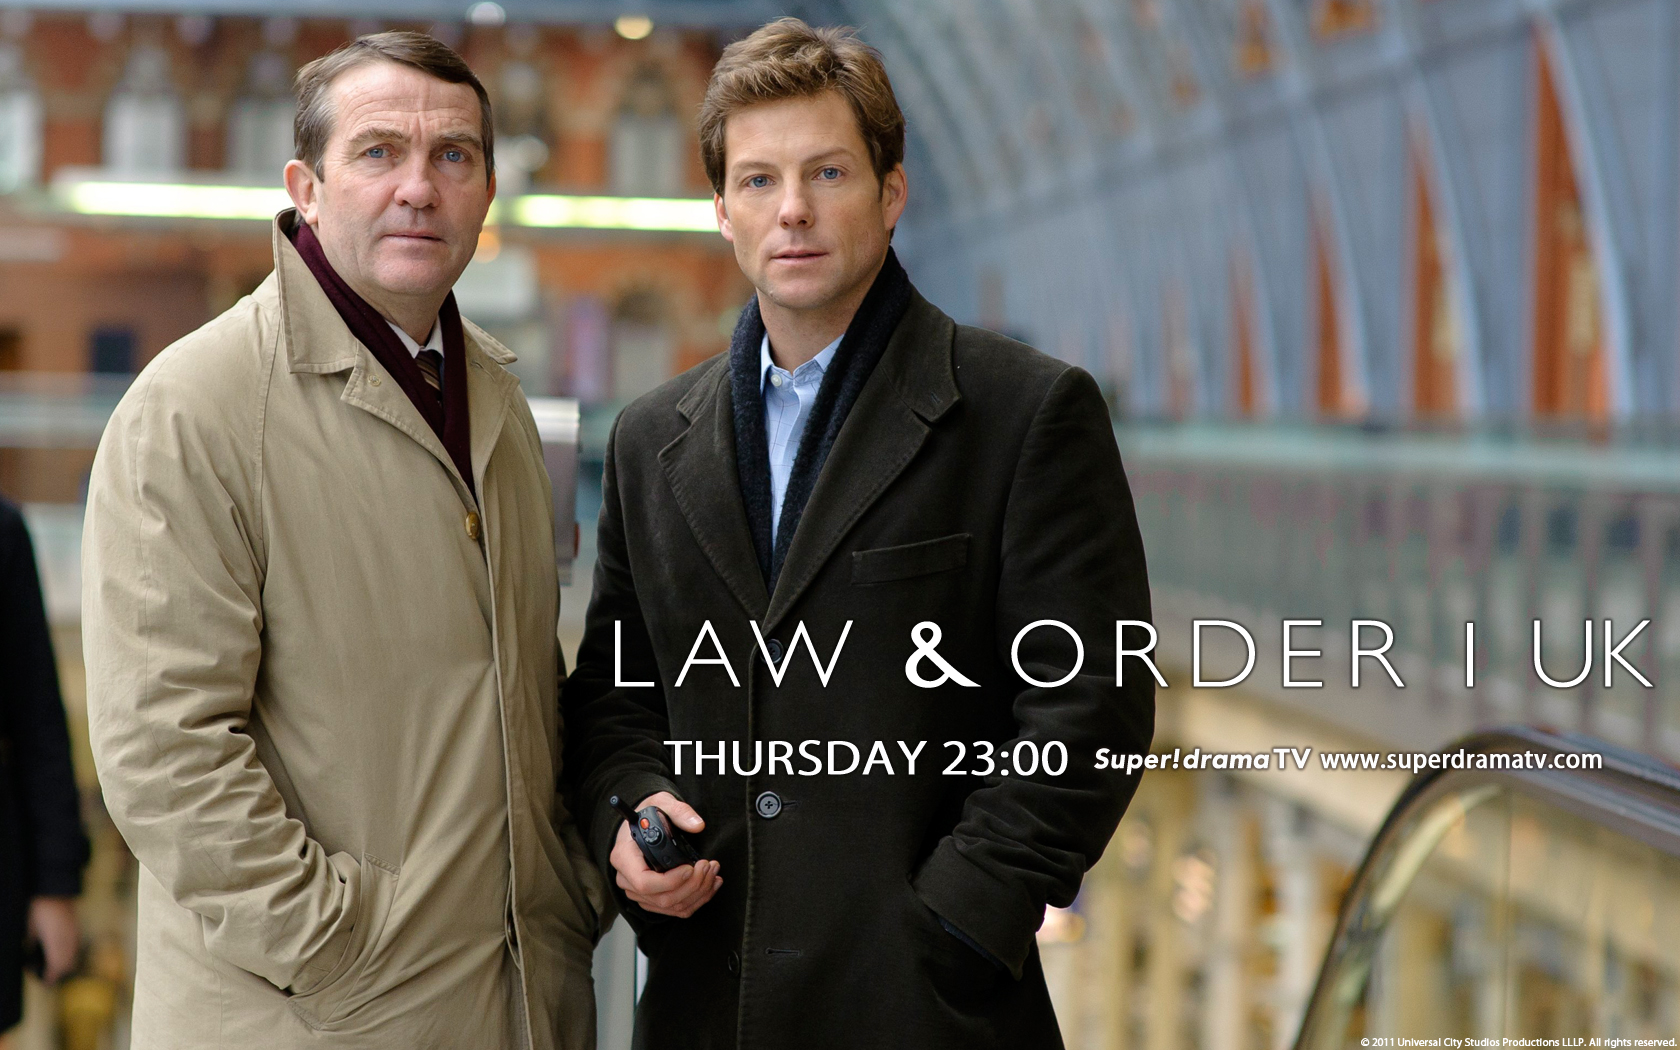 http://www.superdramatv.com/line/lawandorder_uk/features/wallpaper/img/s3_02_1680_1050.jpg